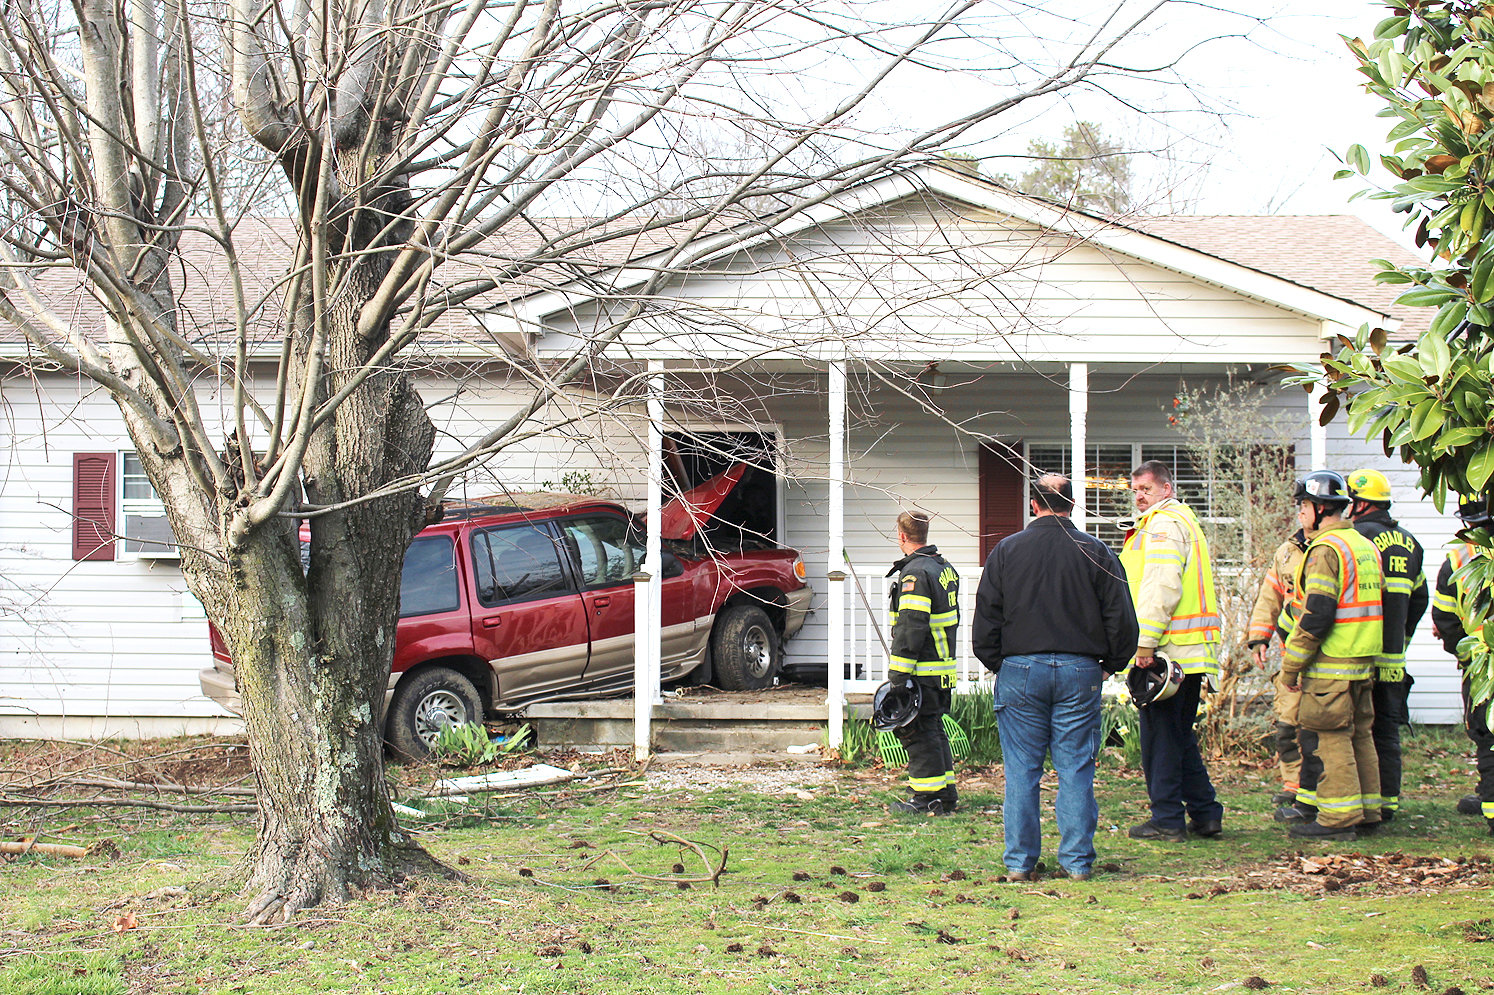 "AN SUV crashed into the front door of a house off Waterlevel Highway after it left the roadway at about 5 p.m. Wednesday. Tennessee Highway Patrol Lt. John Harmon told the Cleveland Daily Banner on Thursday that preliminary information had determined the driver, Michael D. Shenbager, 22, had lost control of his vehicle for an ""unknown reason."" Harmon said no charges are expected at this time."